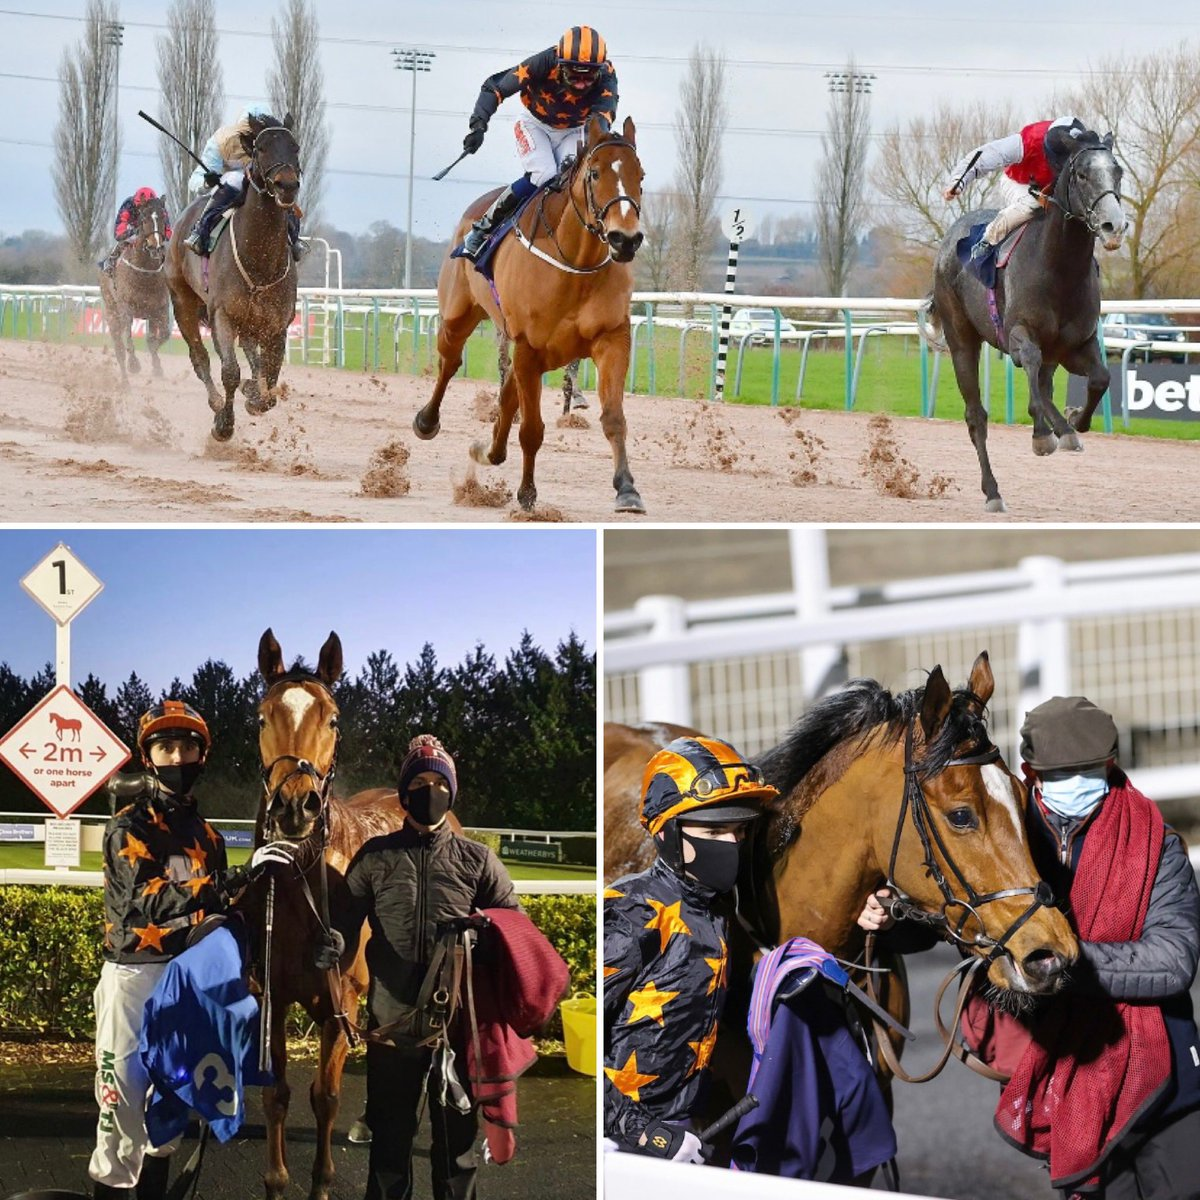 Deb's Delight declared to run @Southwell_Races on Tuesday afternoon with @Isbestbilly in the saddle.  3 winners already on board and we are looking forward to a great year ahead. New members are always welcome, please get in touch if you have any questions https://t.co/mVTVMpVEHt